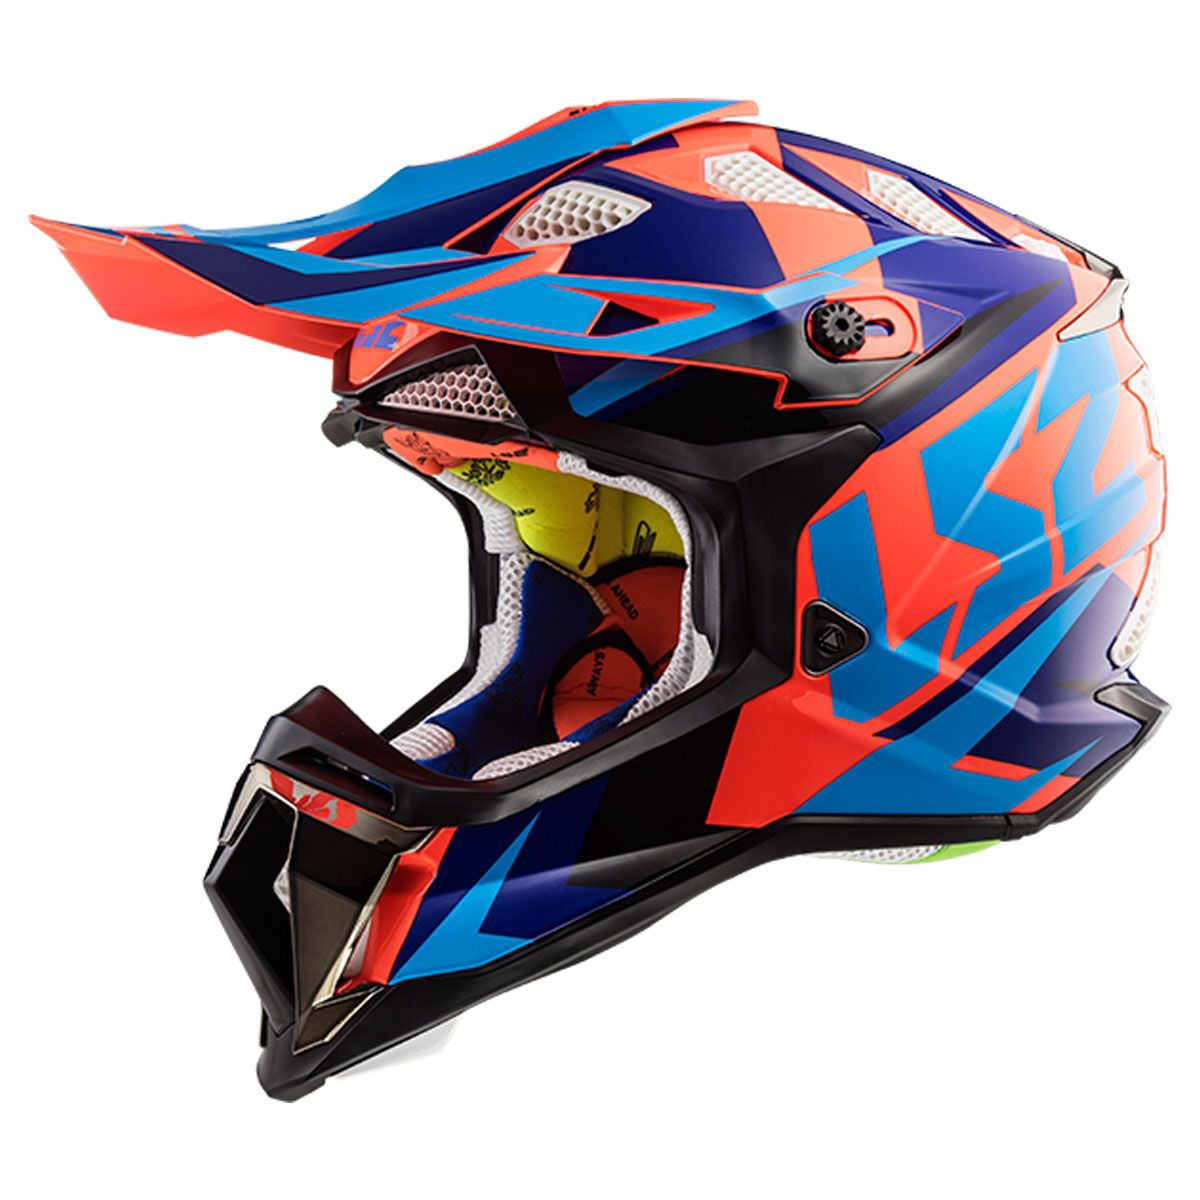 LS2 MX470 Subverter Nimble Blue Orange